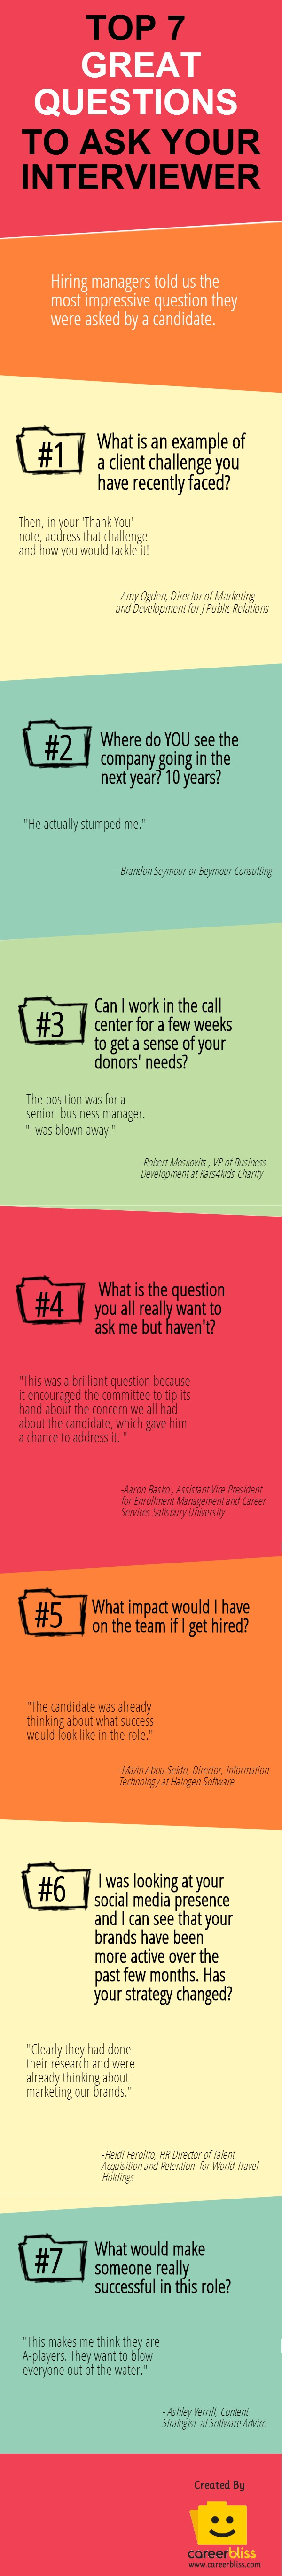 top great questions to ask your interviewer infographic alt